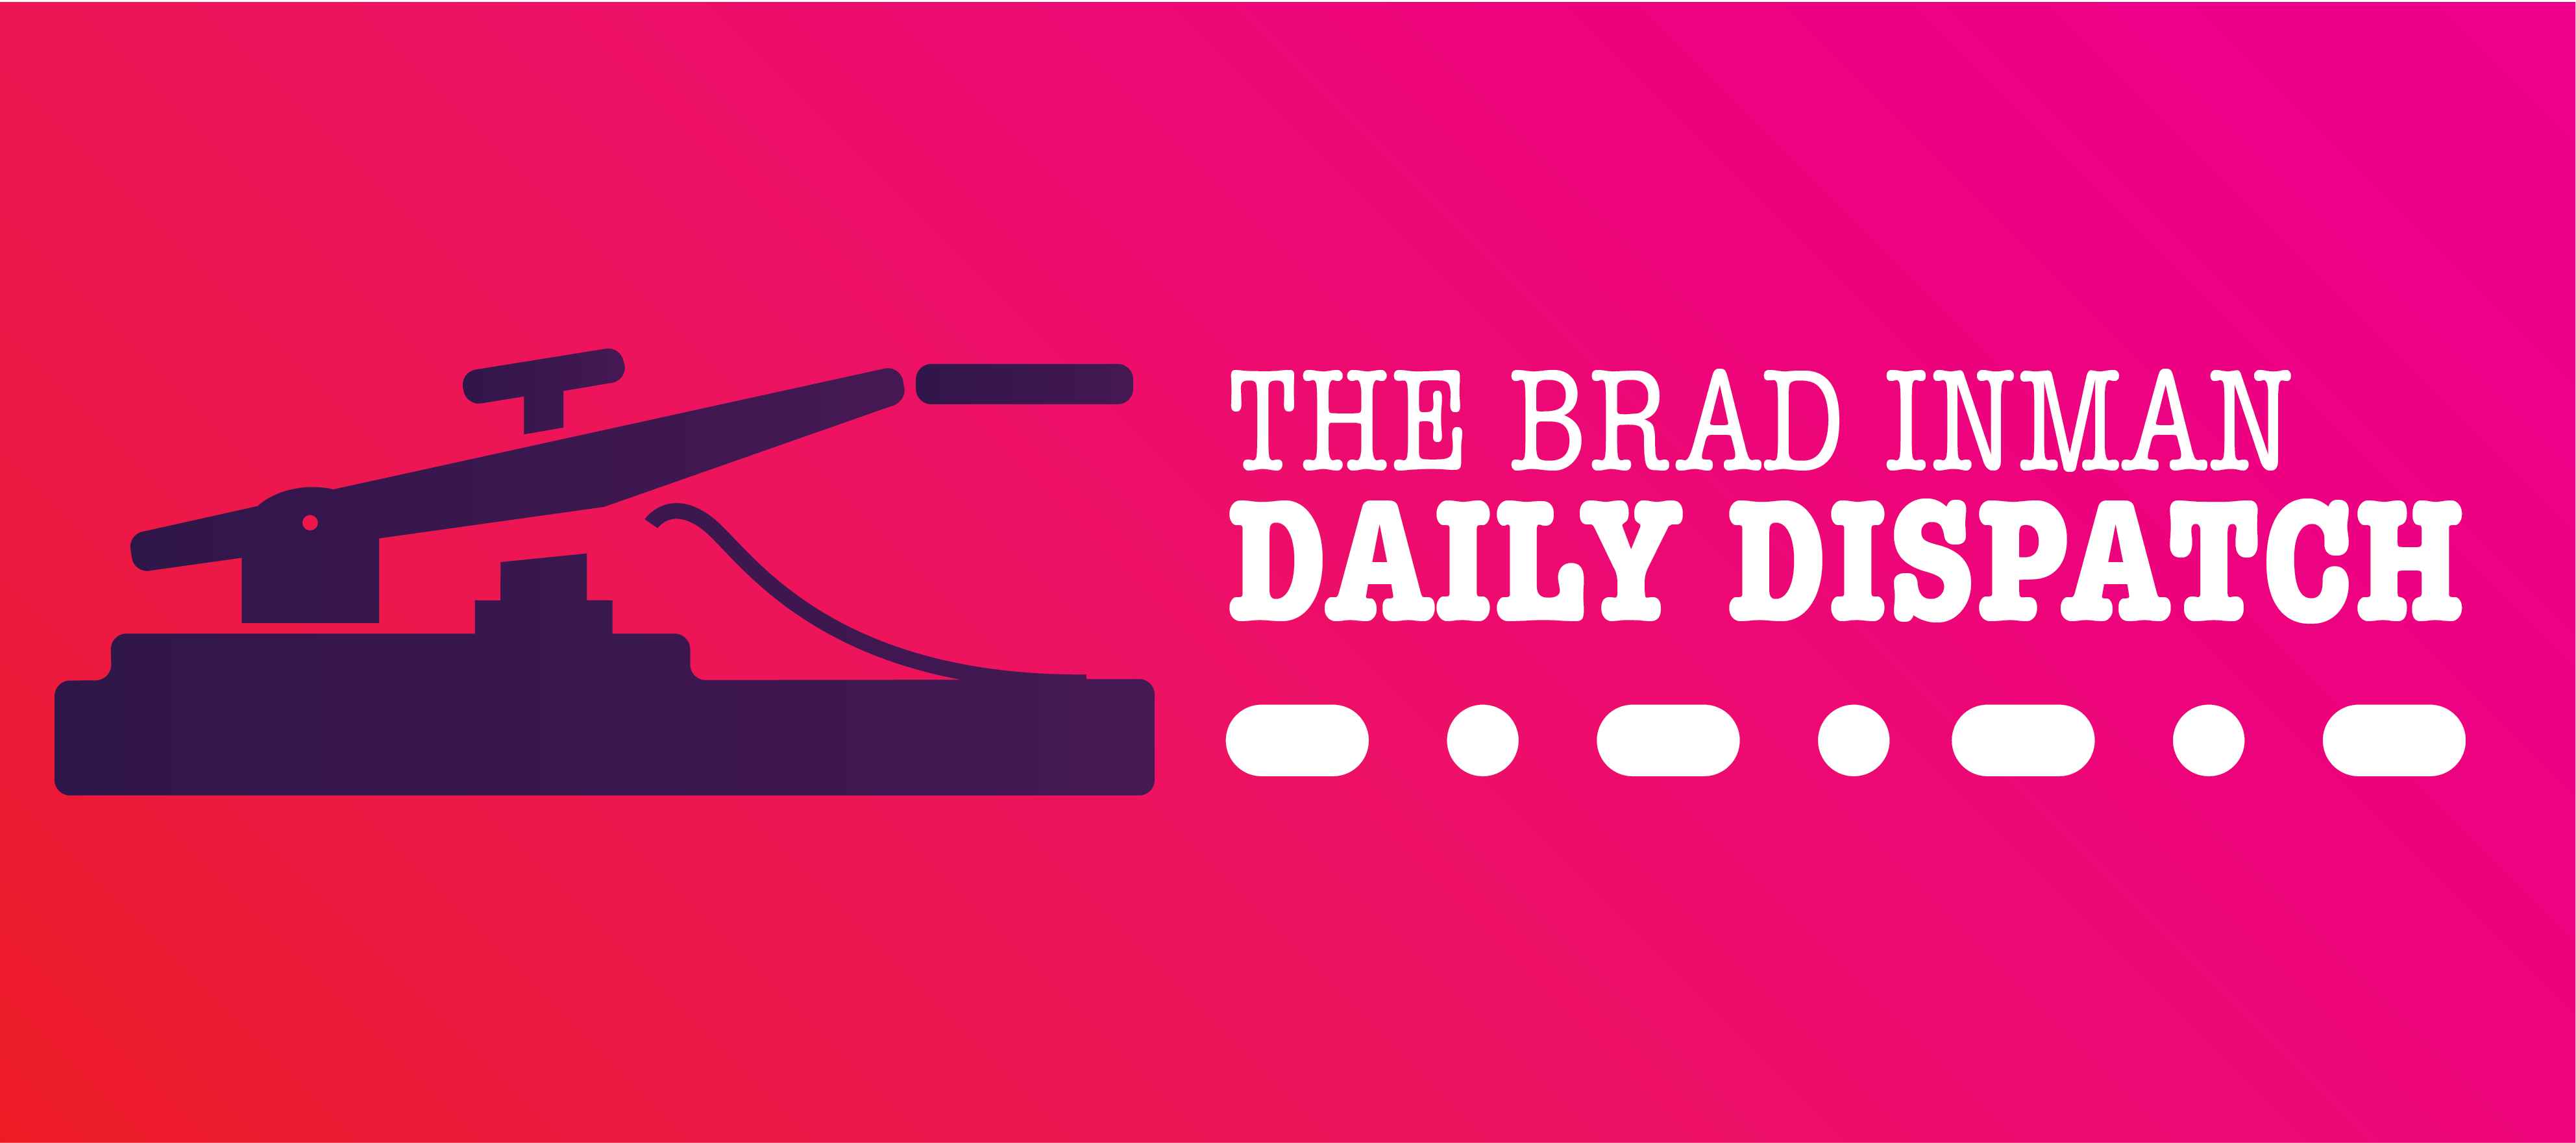 Daily Dispatch: Brad Inman with Bob Goldberg and Shannon McGahn